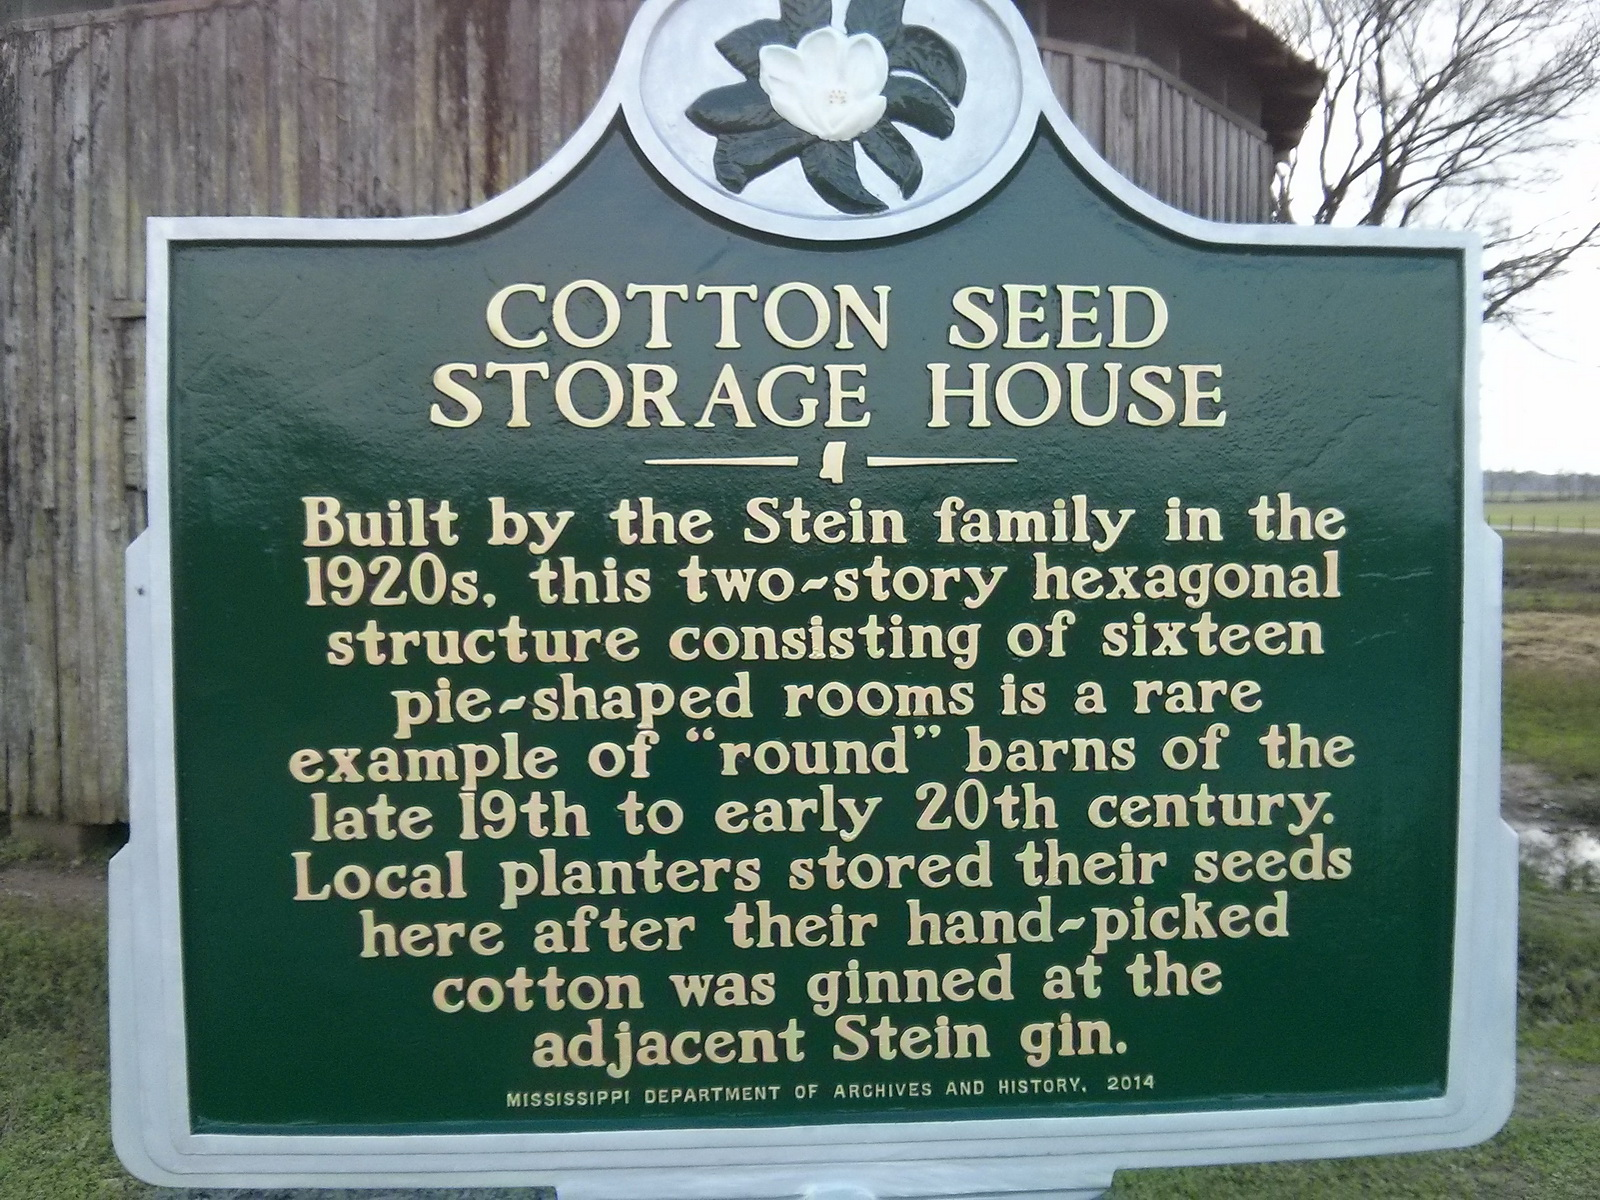 Mississippi washington county chatham - Mississippi Department Of Archives And History Has Placed A Historic Marker In Front Of The Barn